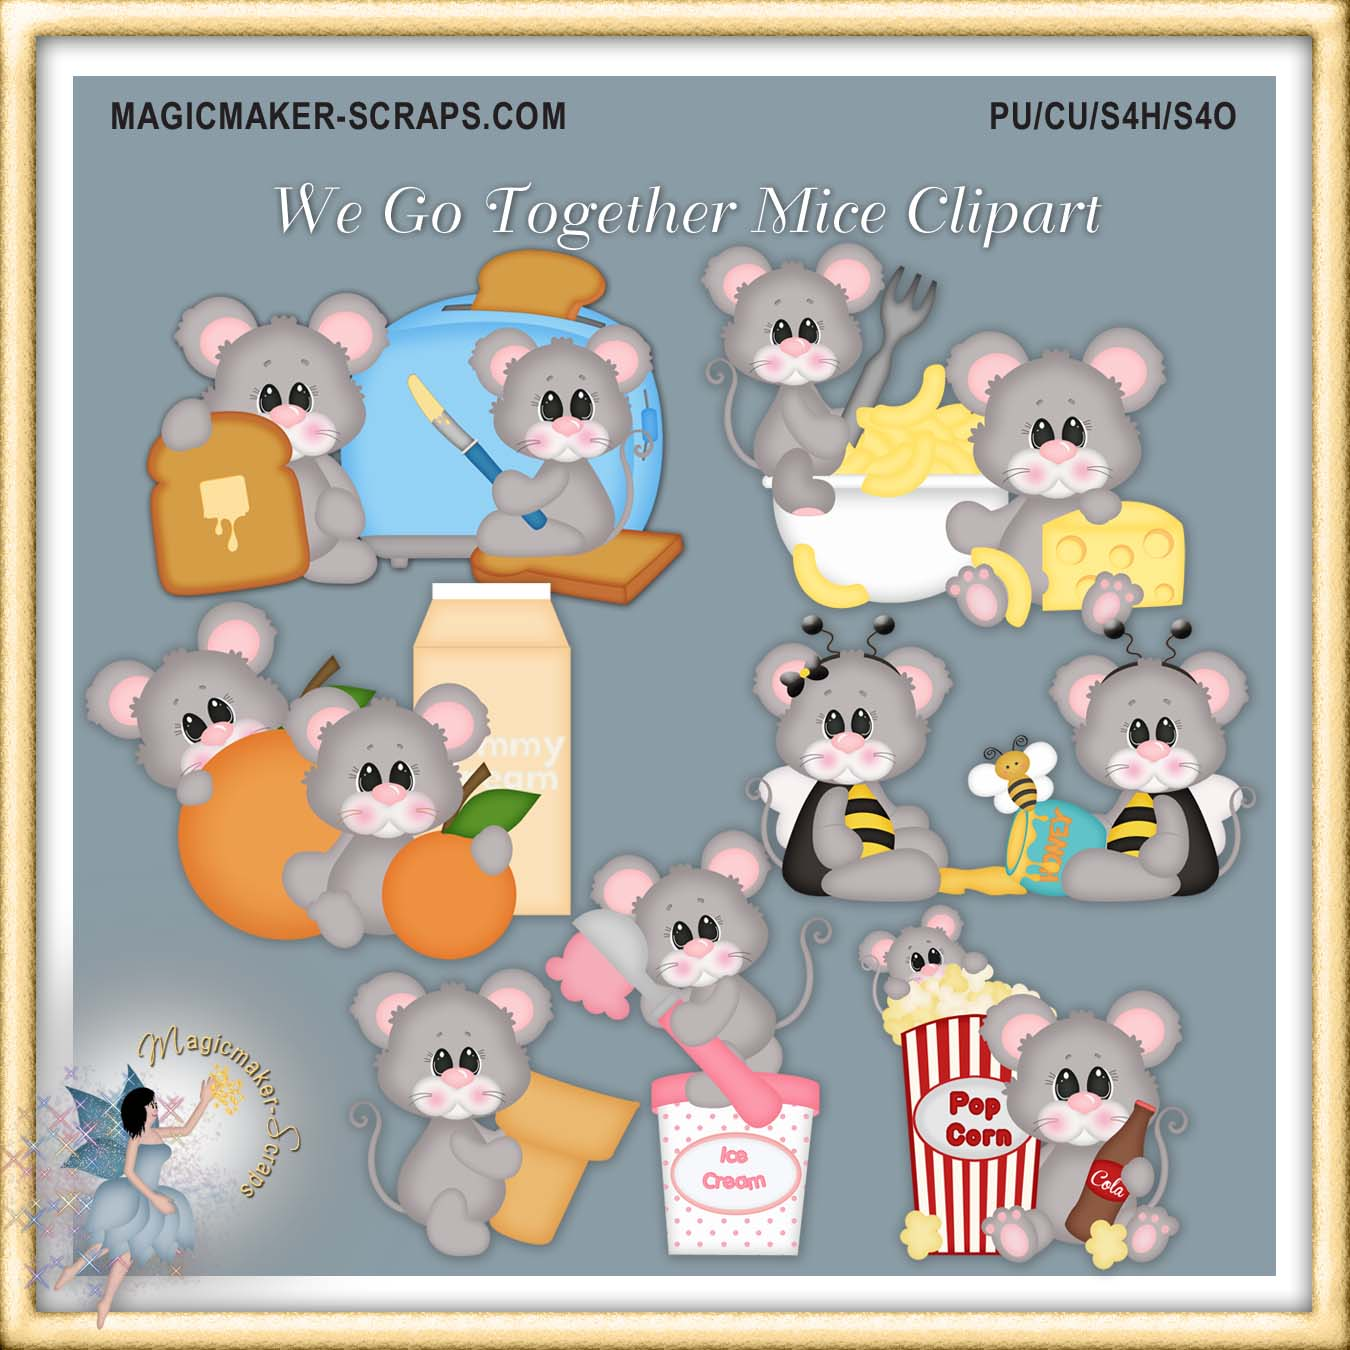 We go together clipart clip art free download We Go Together Mice Clipart - $1.00 : Magicmaker-Scraps, shoppe clip art free download